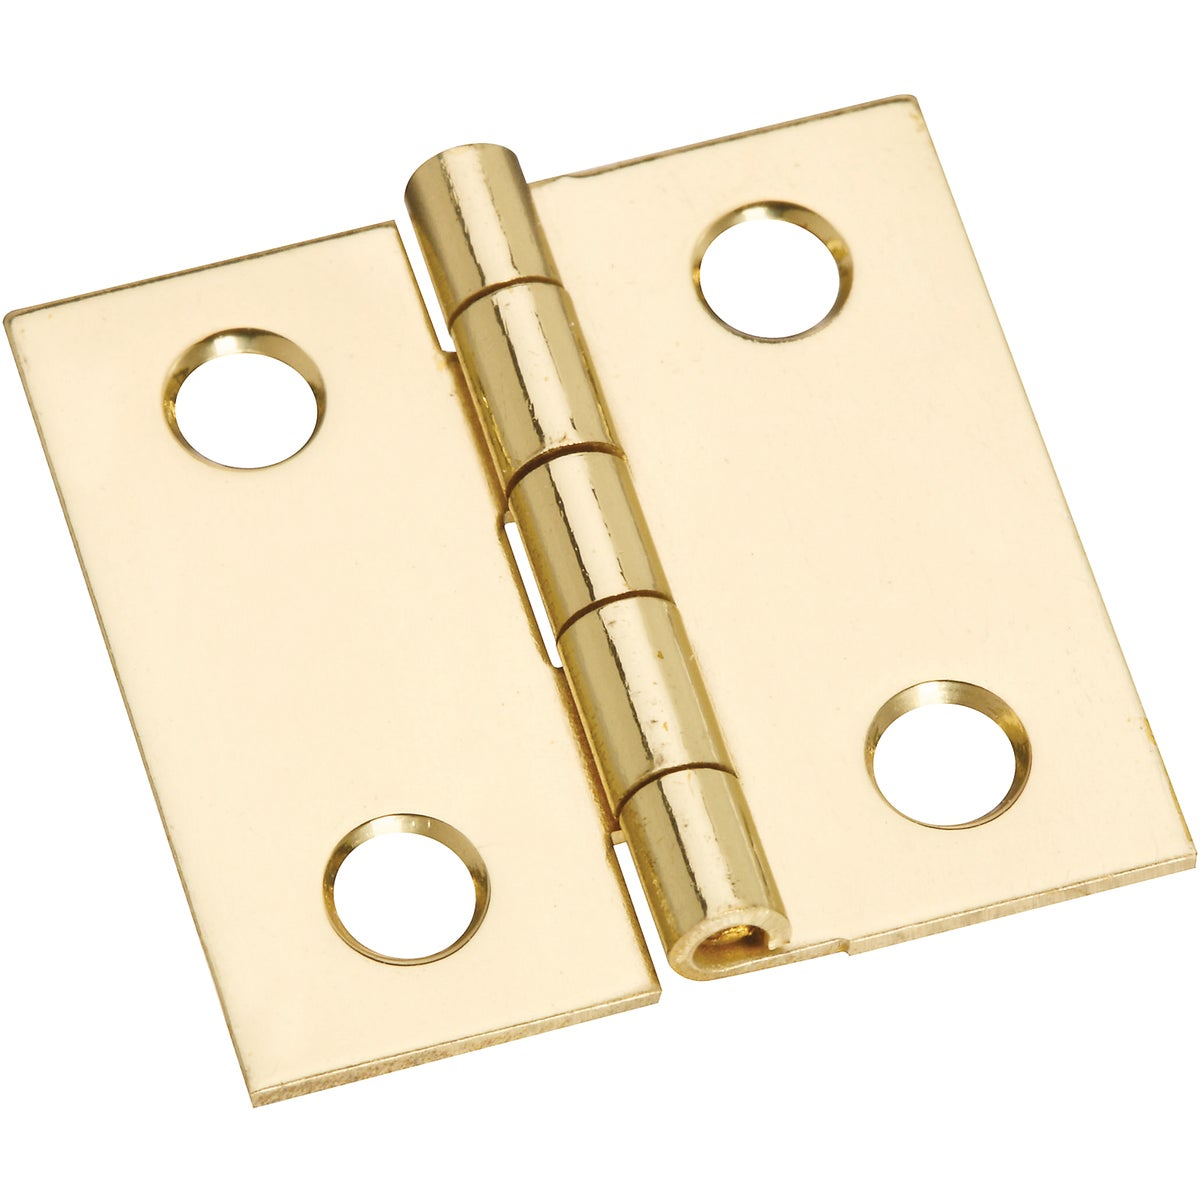 "1"" SBRS BROAD HINGE - N211334 by National Mfg Co"